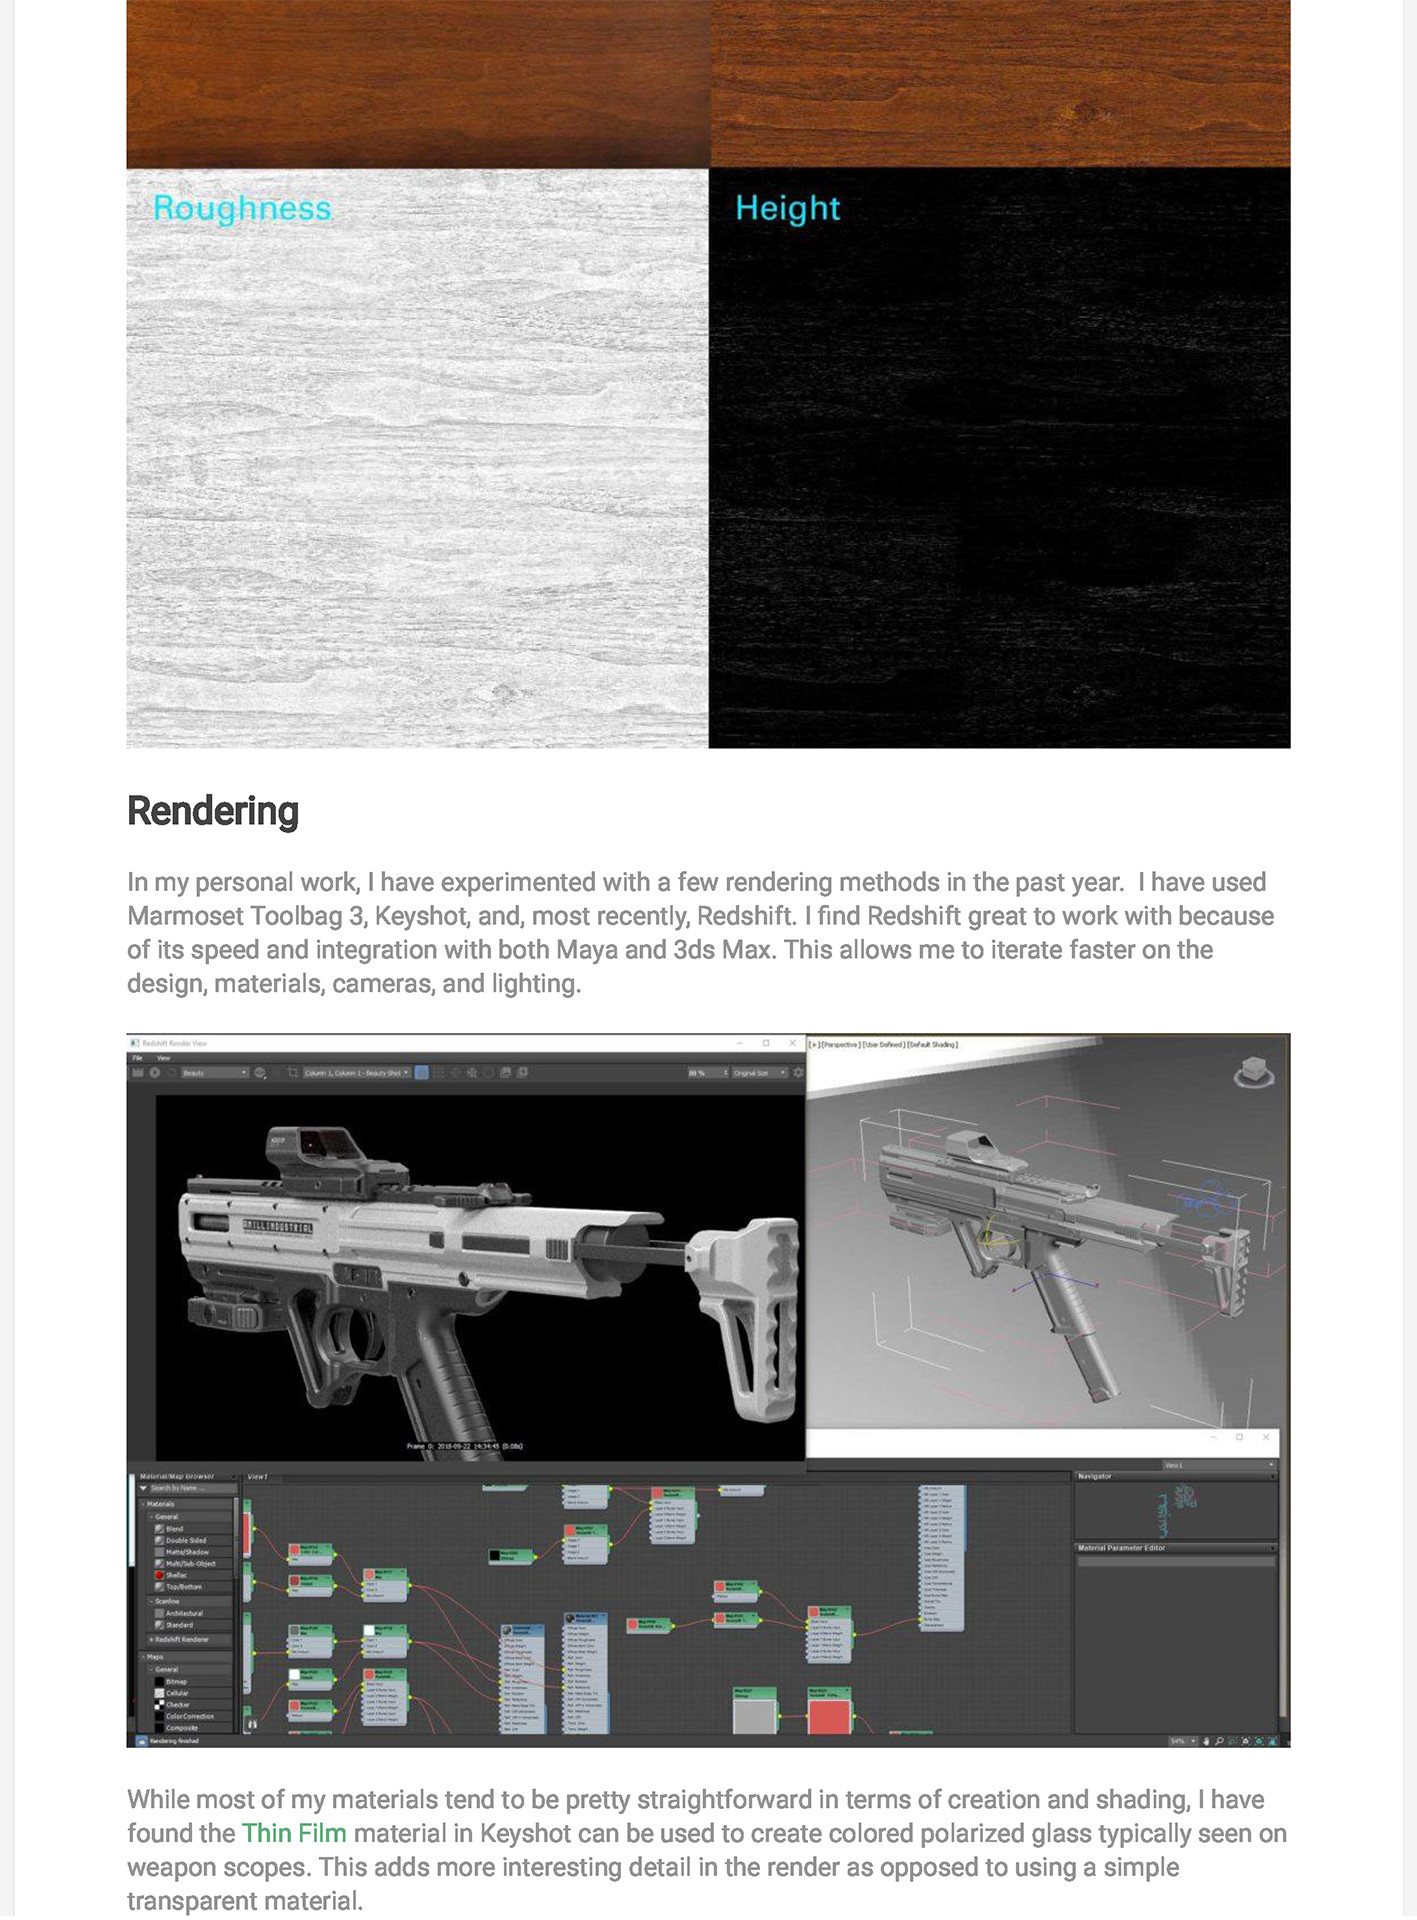 Chris stone experimenting with weapon design page 08